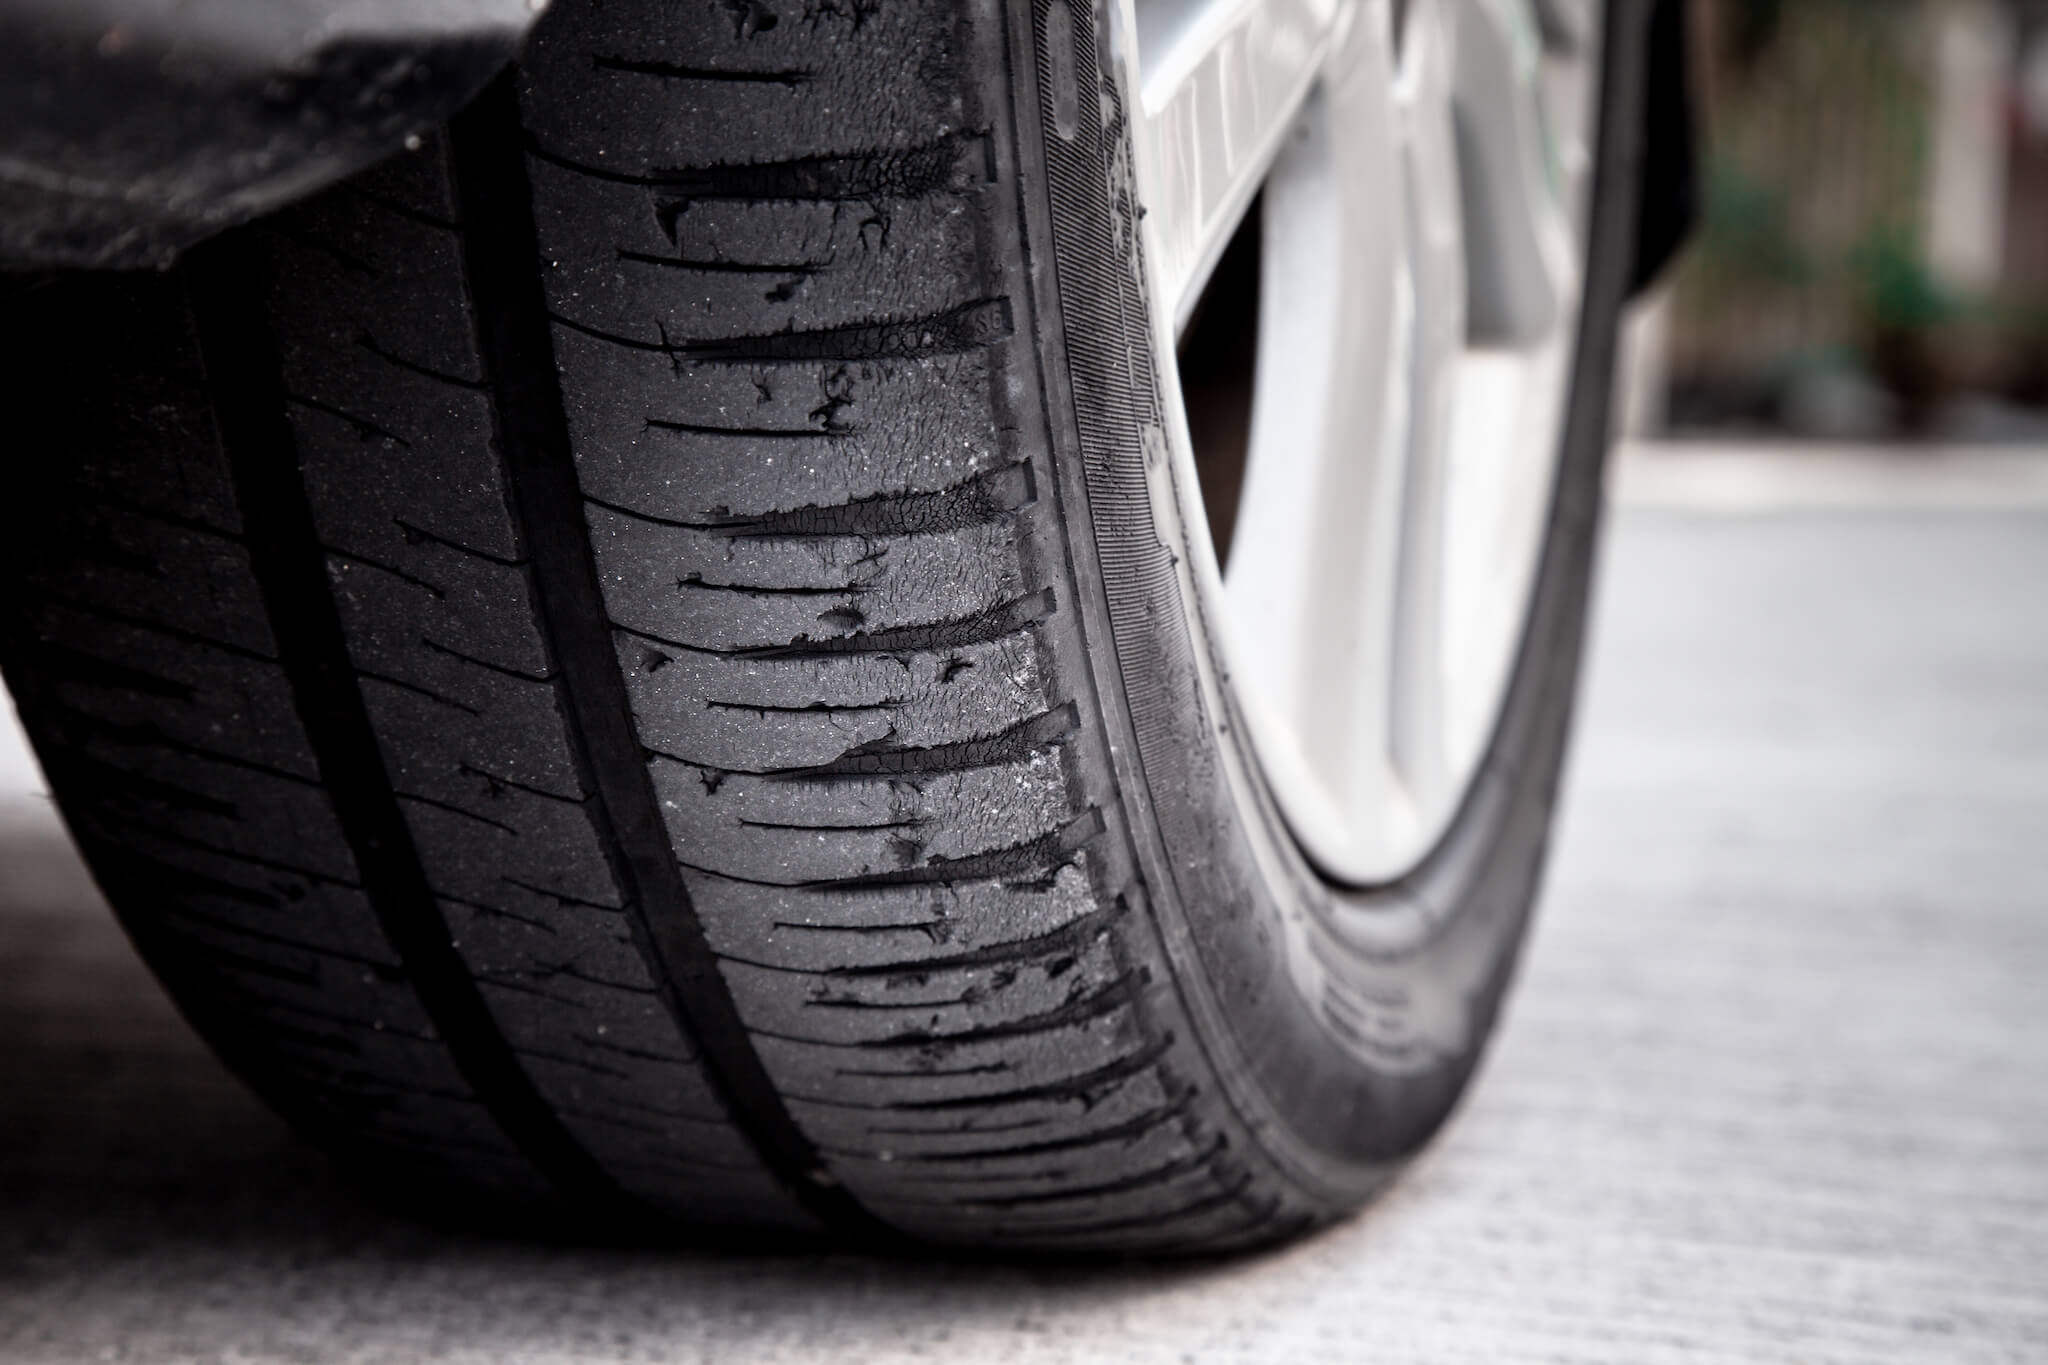 Bald tires are dangerous to drive on.